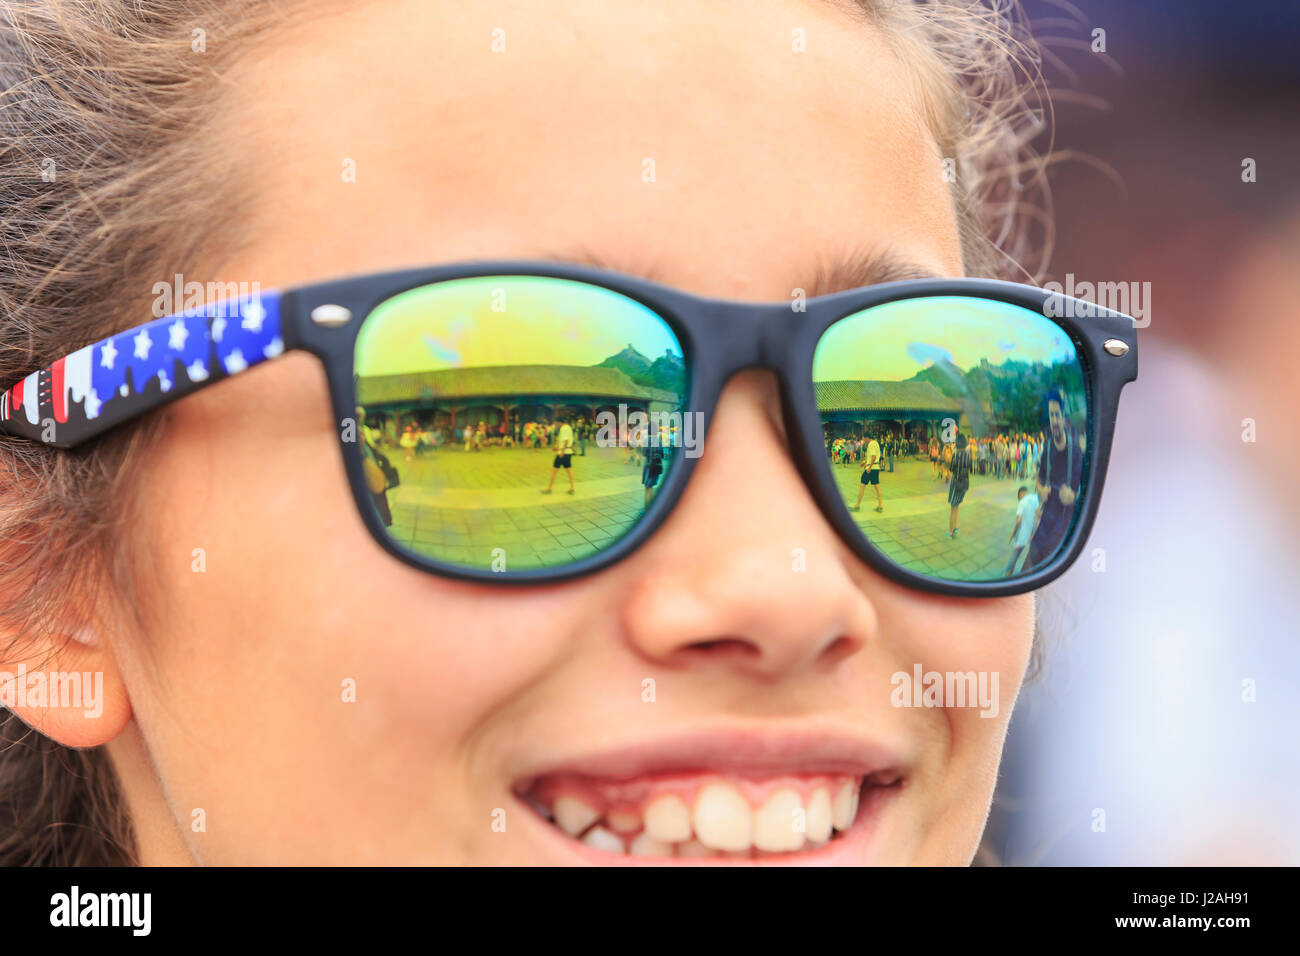 Sunglass reflections from teen girl visiting The Great Wall, Modern Seven Wonders of the World, Qianjiadian Scenic - Stock Image